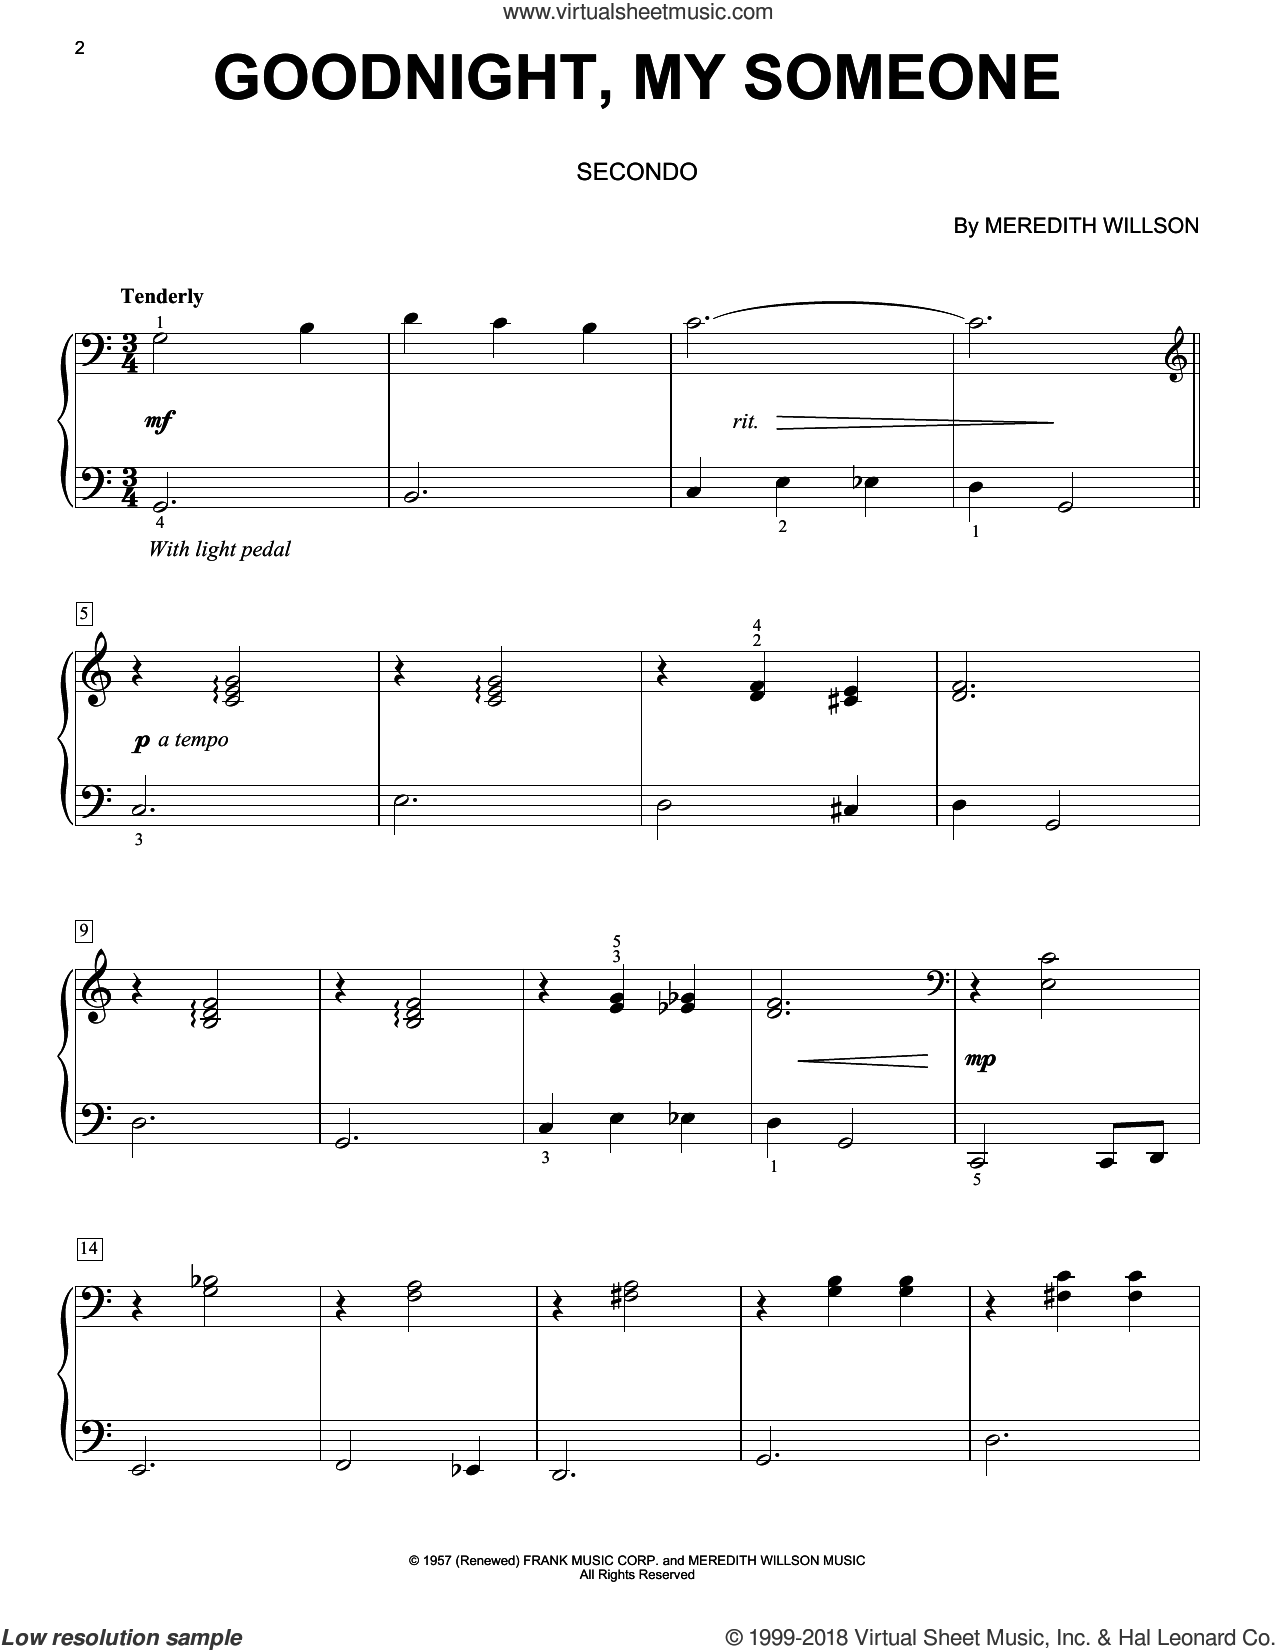 Goodnight, My Someone sheet music for piano four hands by Meredith Willson, intermediate skill level